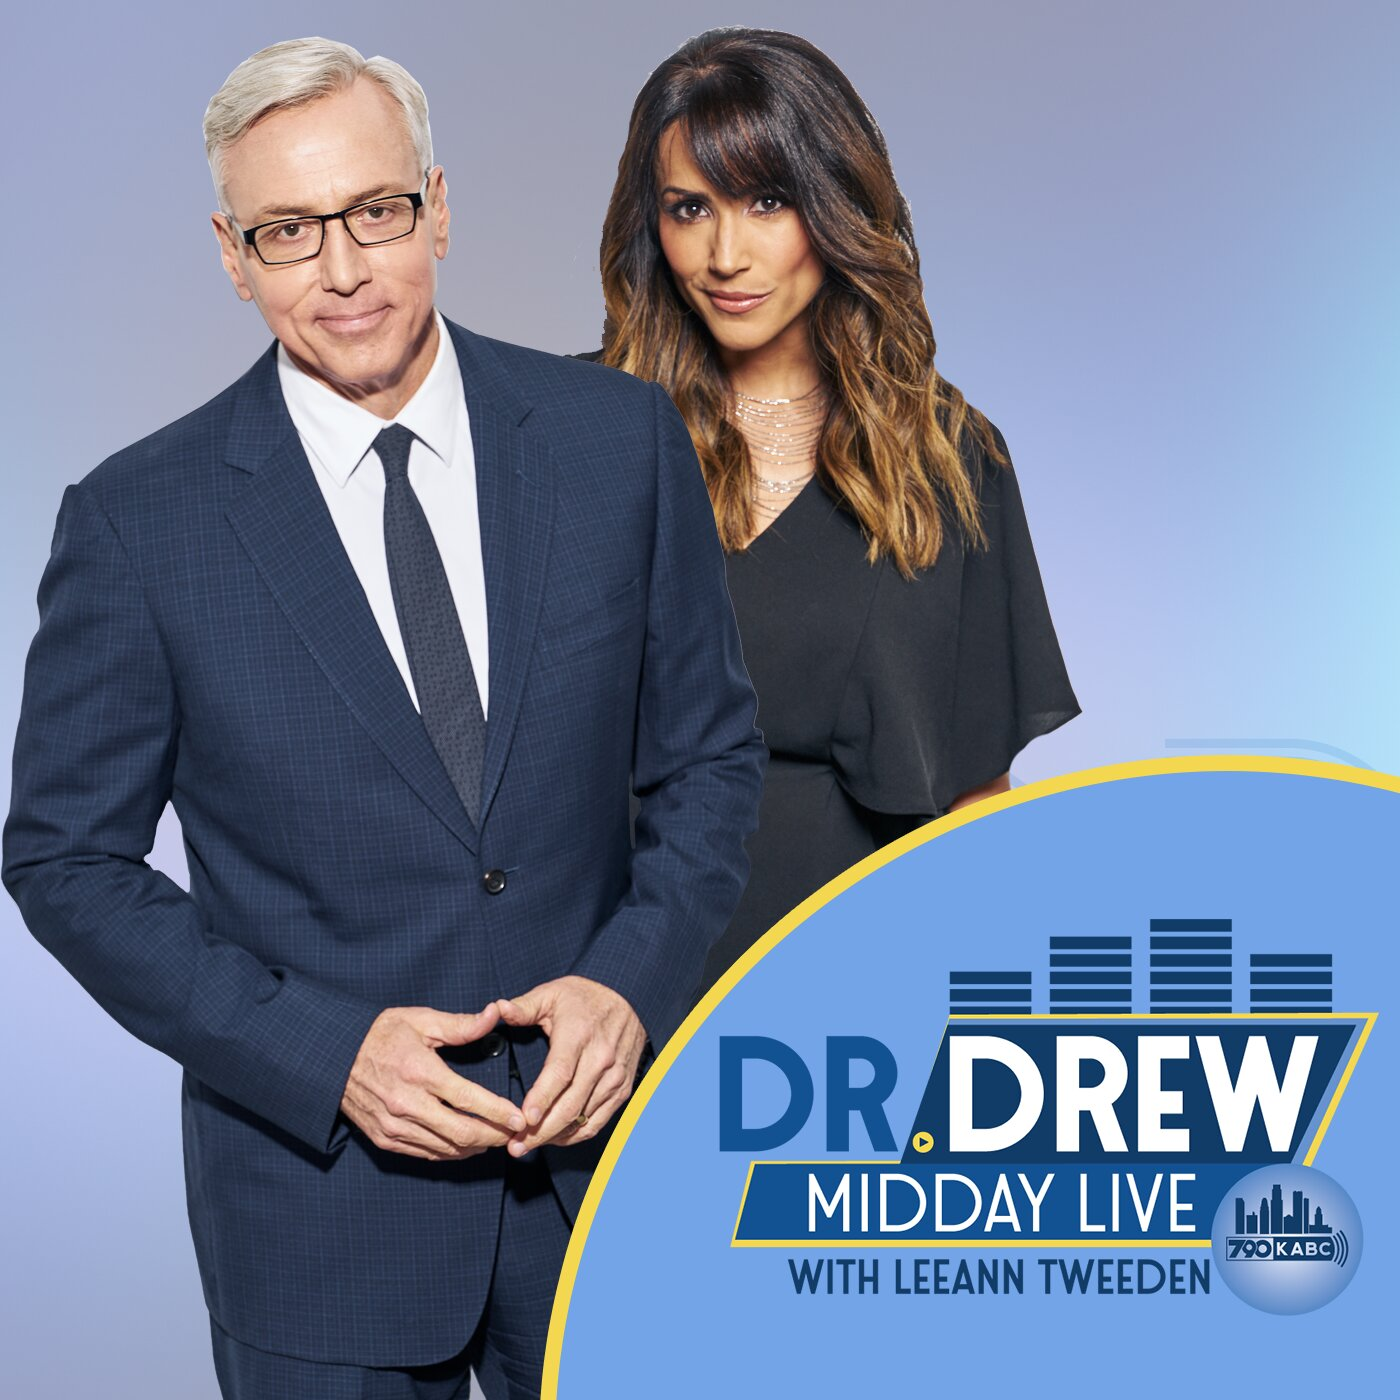 Dr. Drew Midday Live with Psycho Mike Catherwood